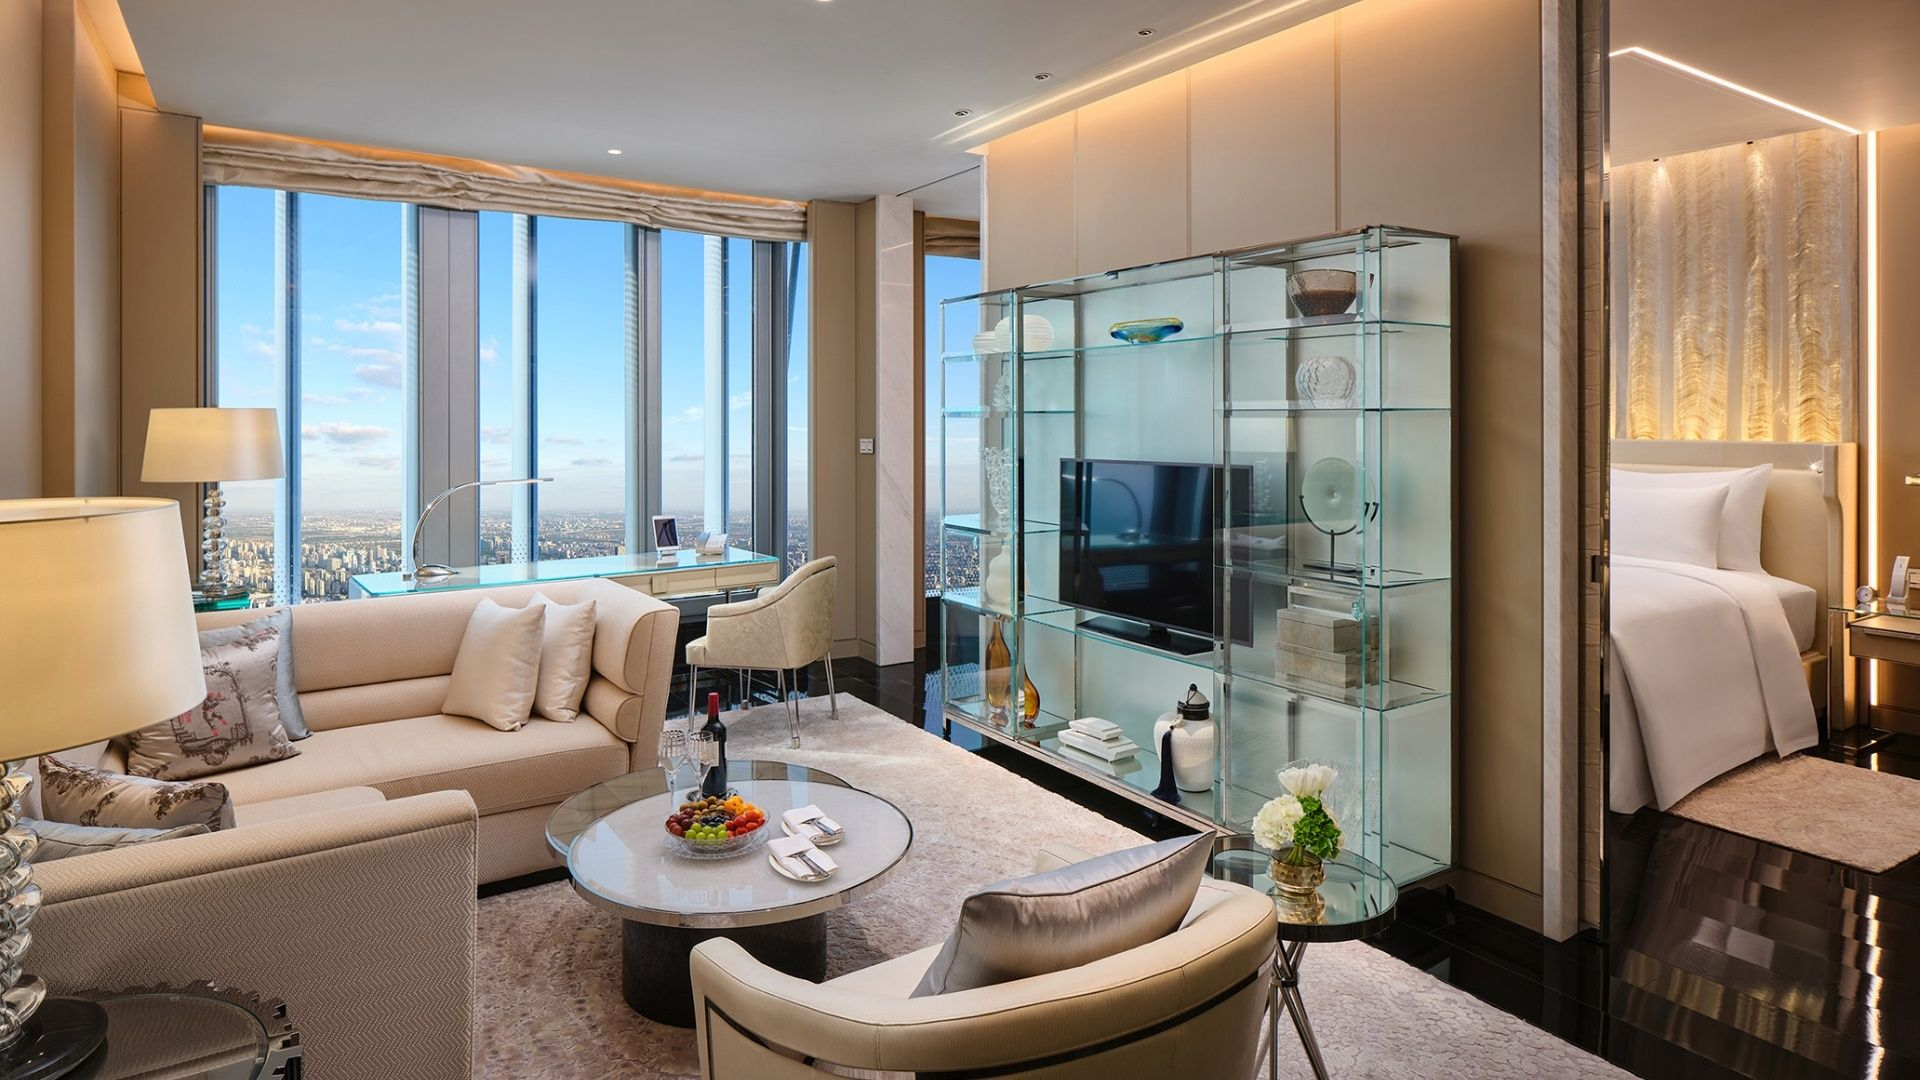 The living room of the grand suite at J Hotel Shanghai features modern decor and skyline views.